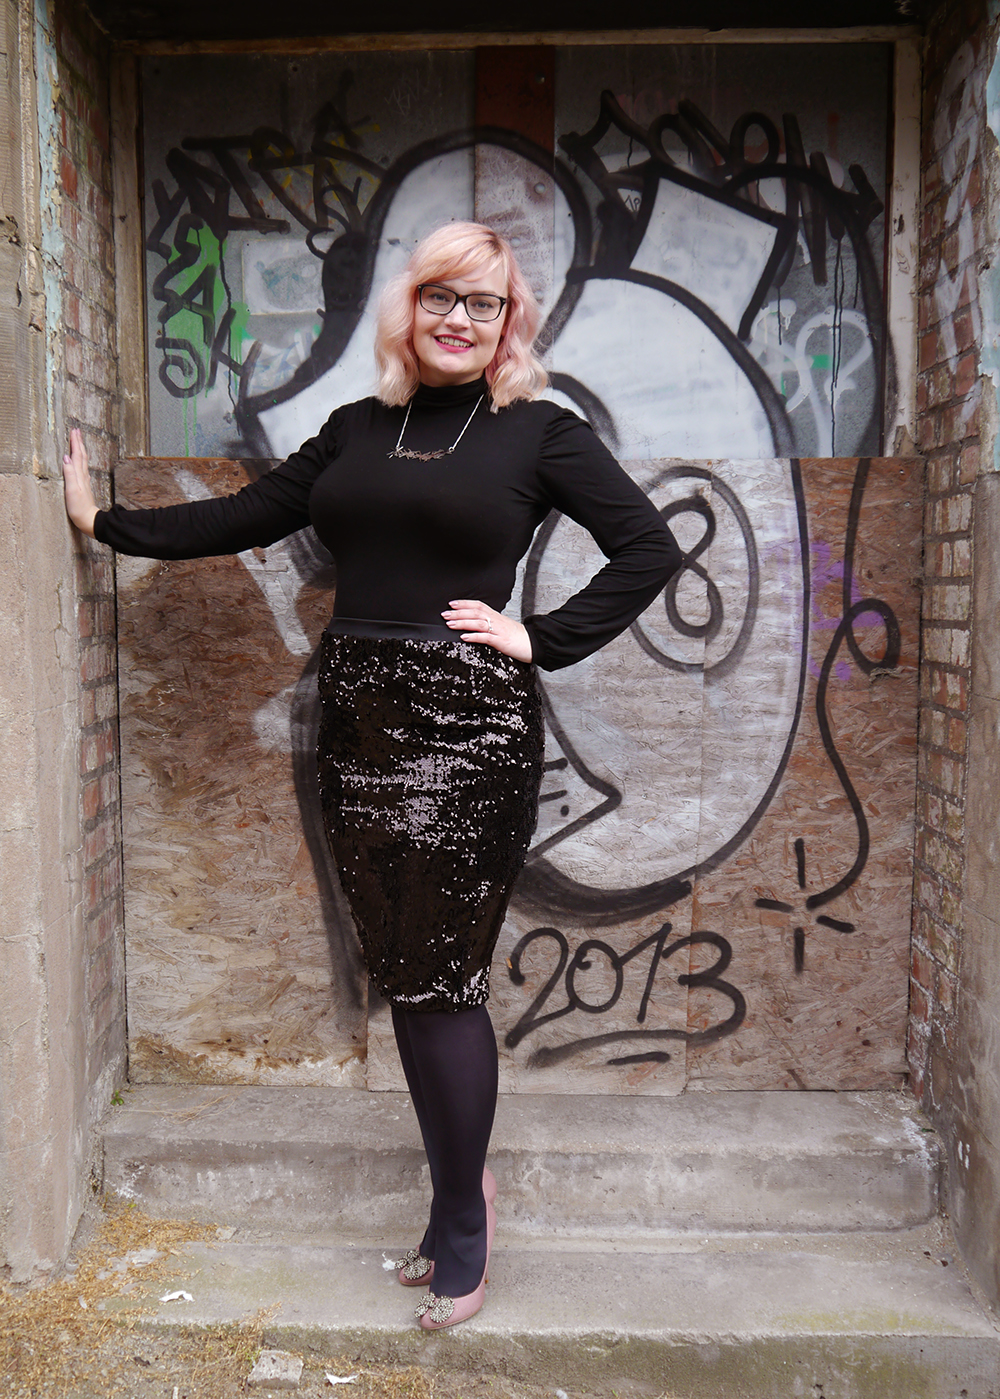 lady muck, laser cut jewellery, grafitti, Dundee photoshoot, peach hair DIY, blakc sequin skirt, Kurt Geiger shoes, hourglass shape, plus size blogger, Scottish fashion blogger,polo neck, Scottish winter look,